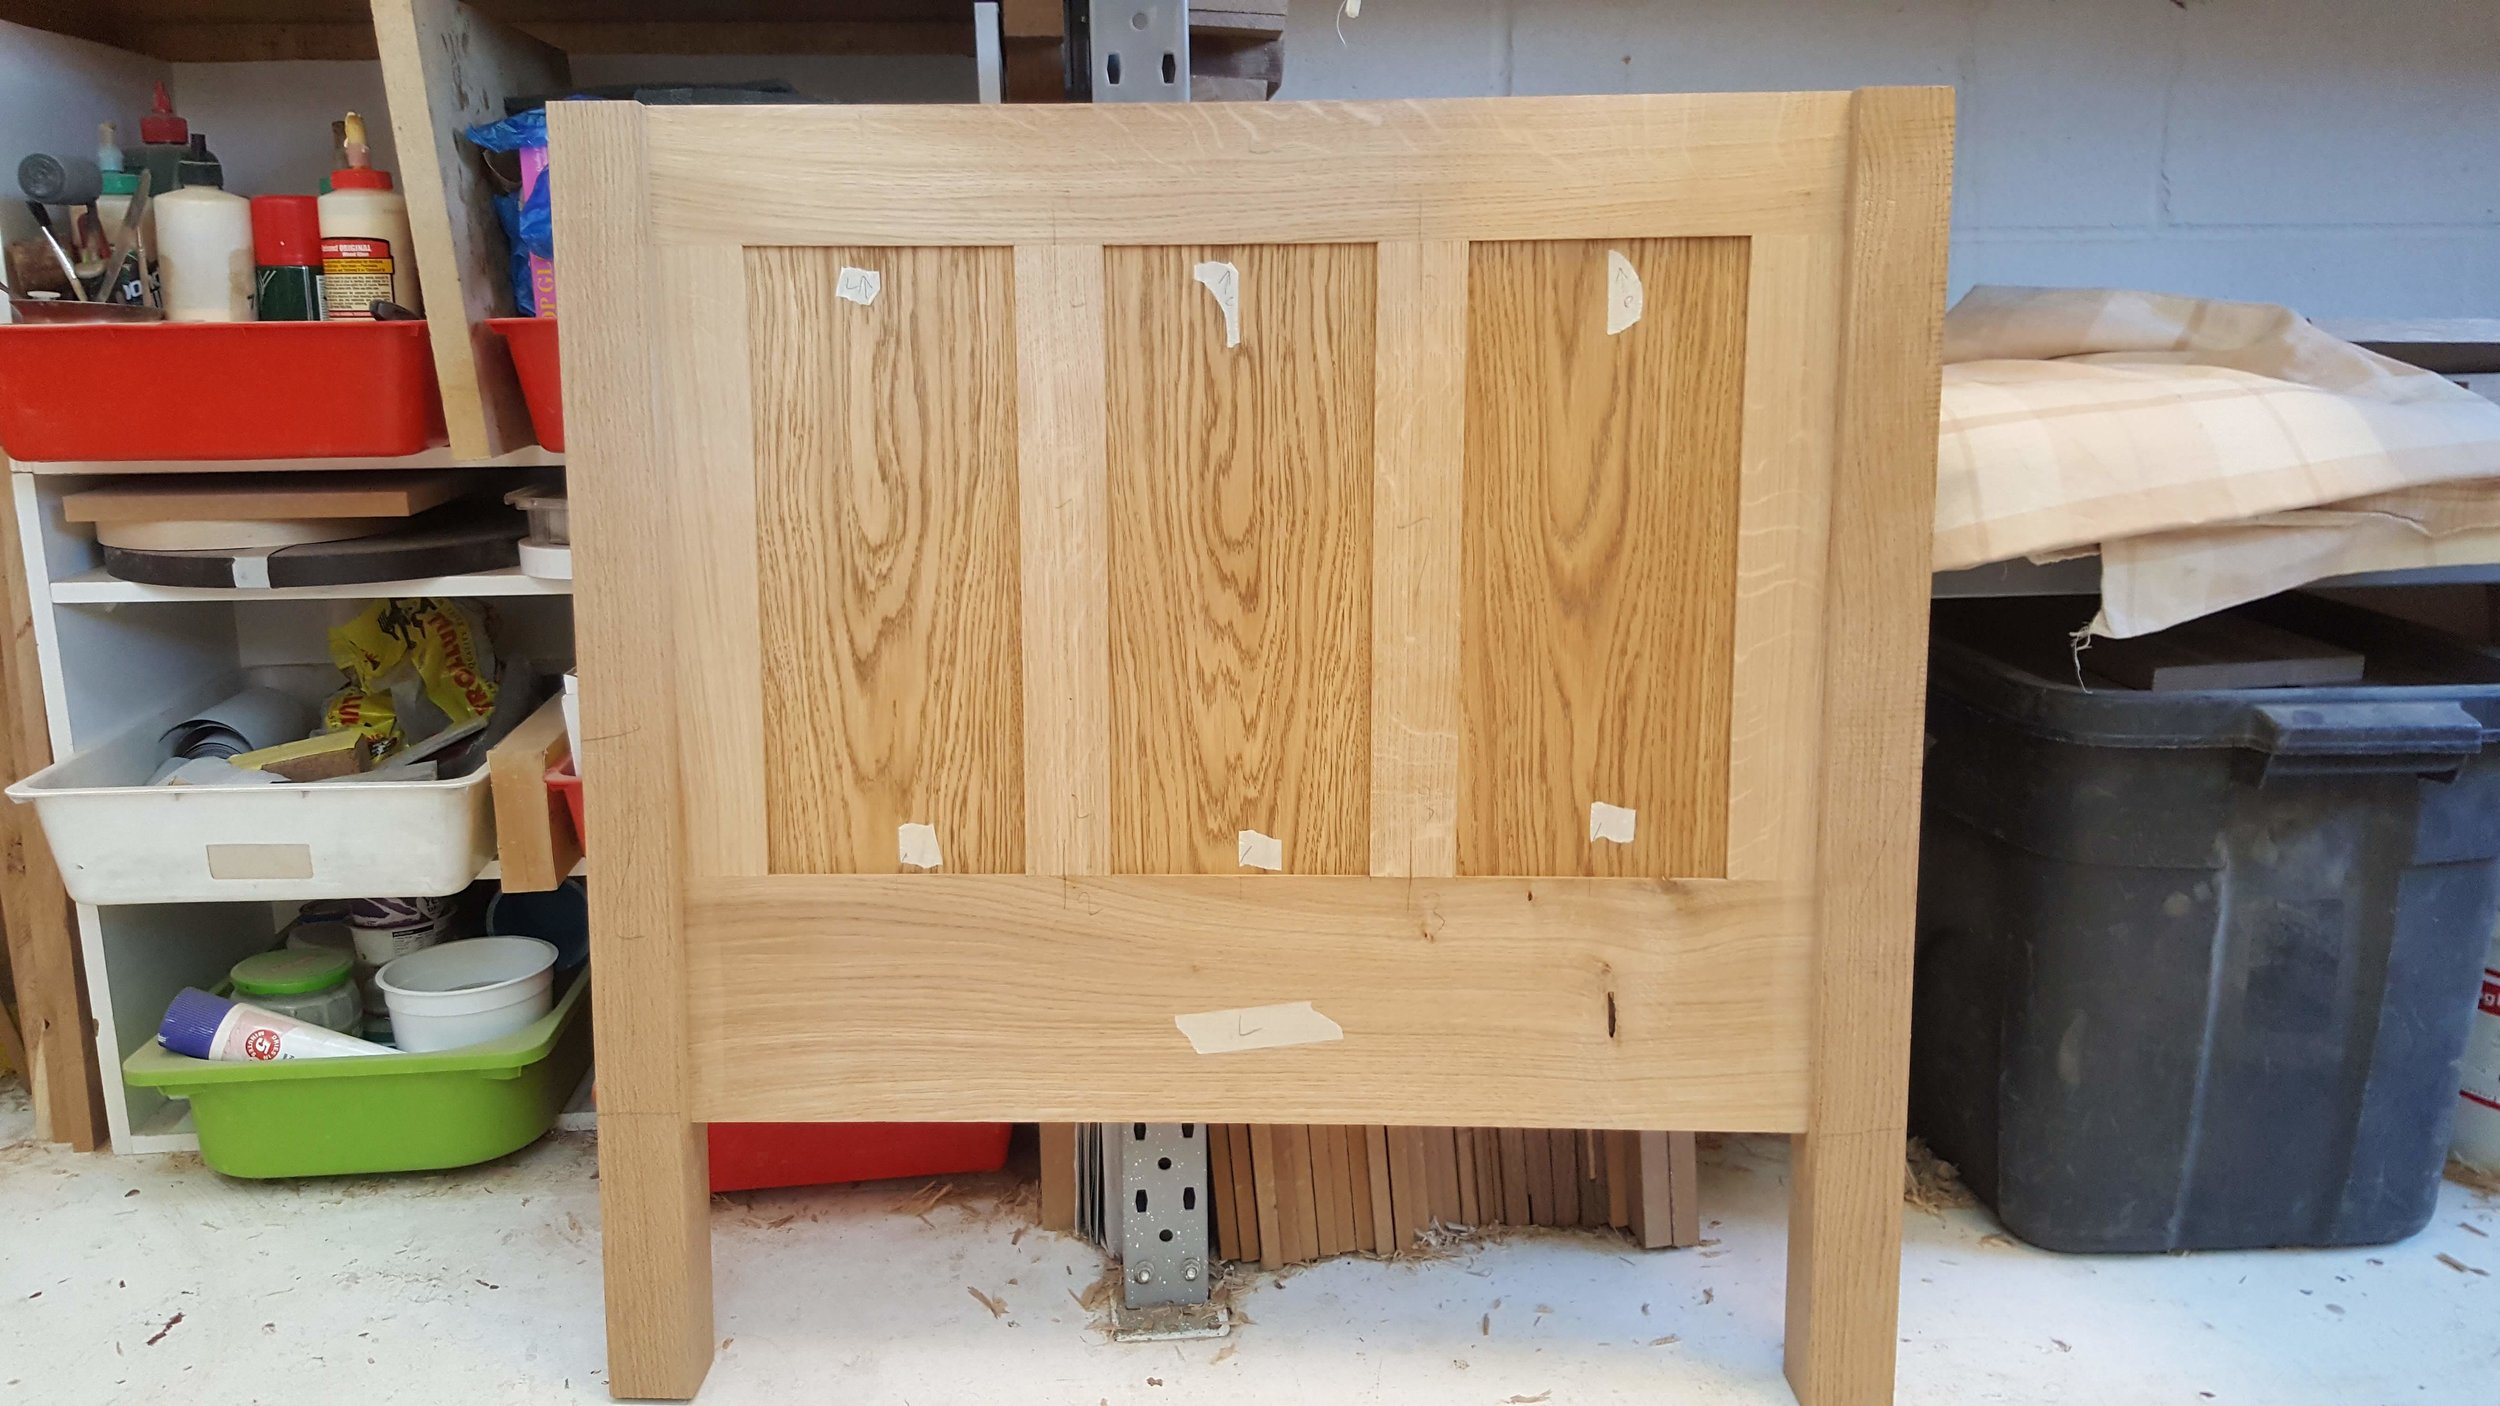 Heliconia_Furniture_Arts&Crafts_Desk_LooseTongue&Groove.jpg